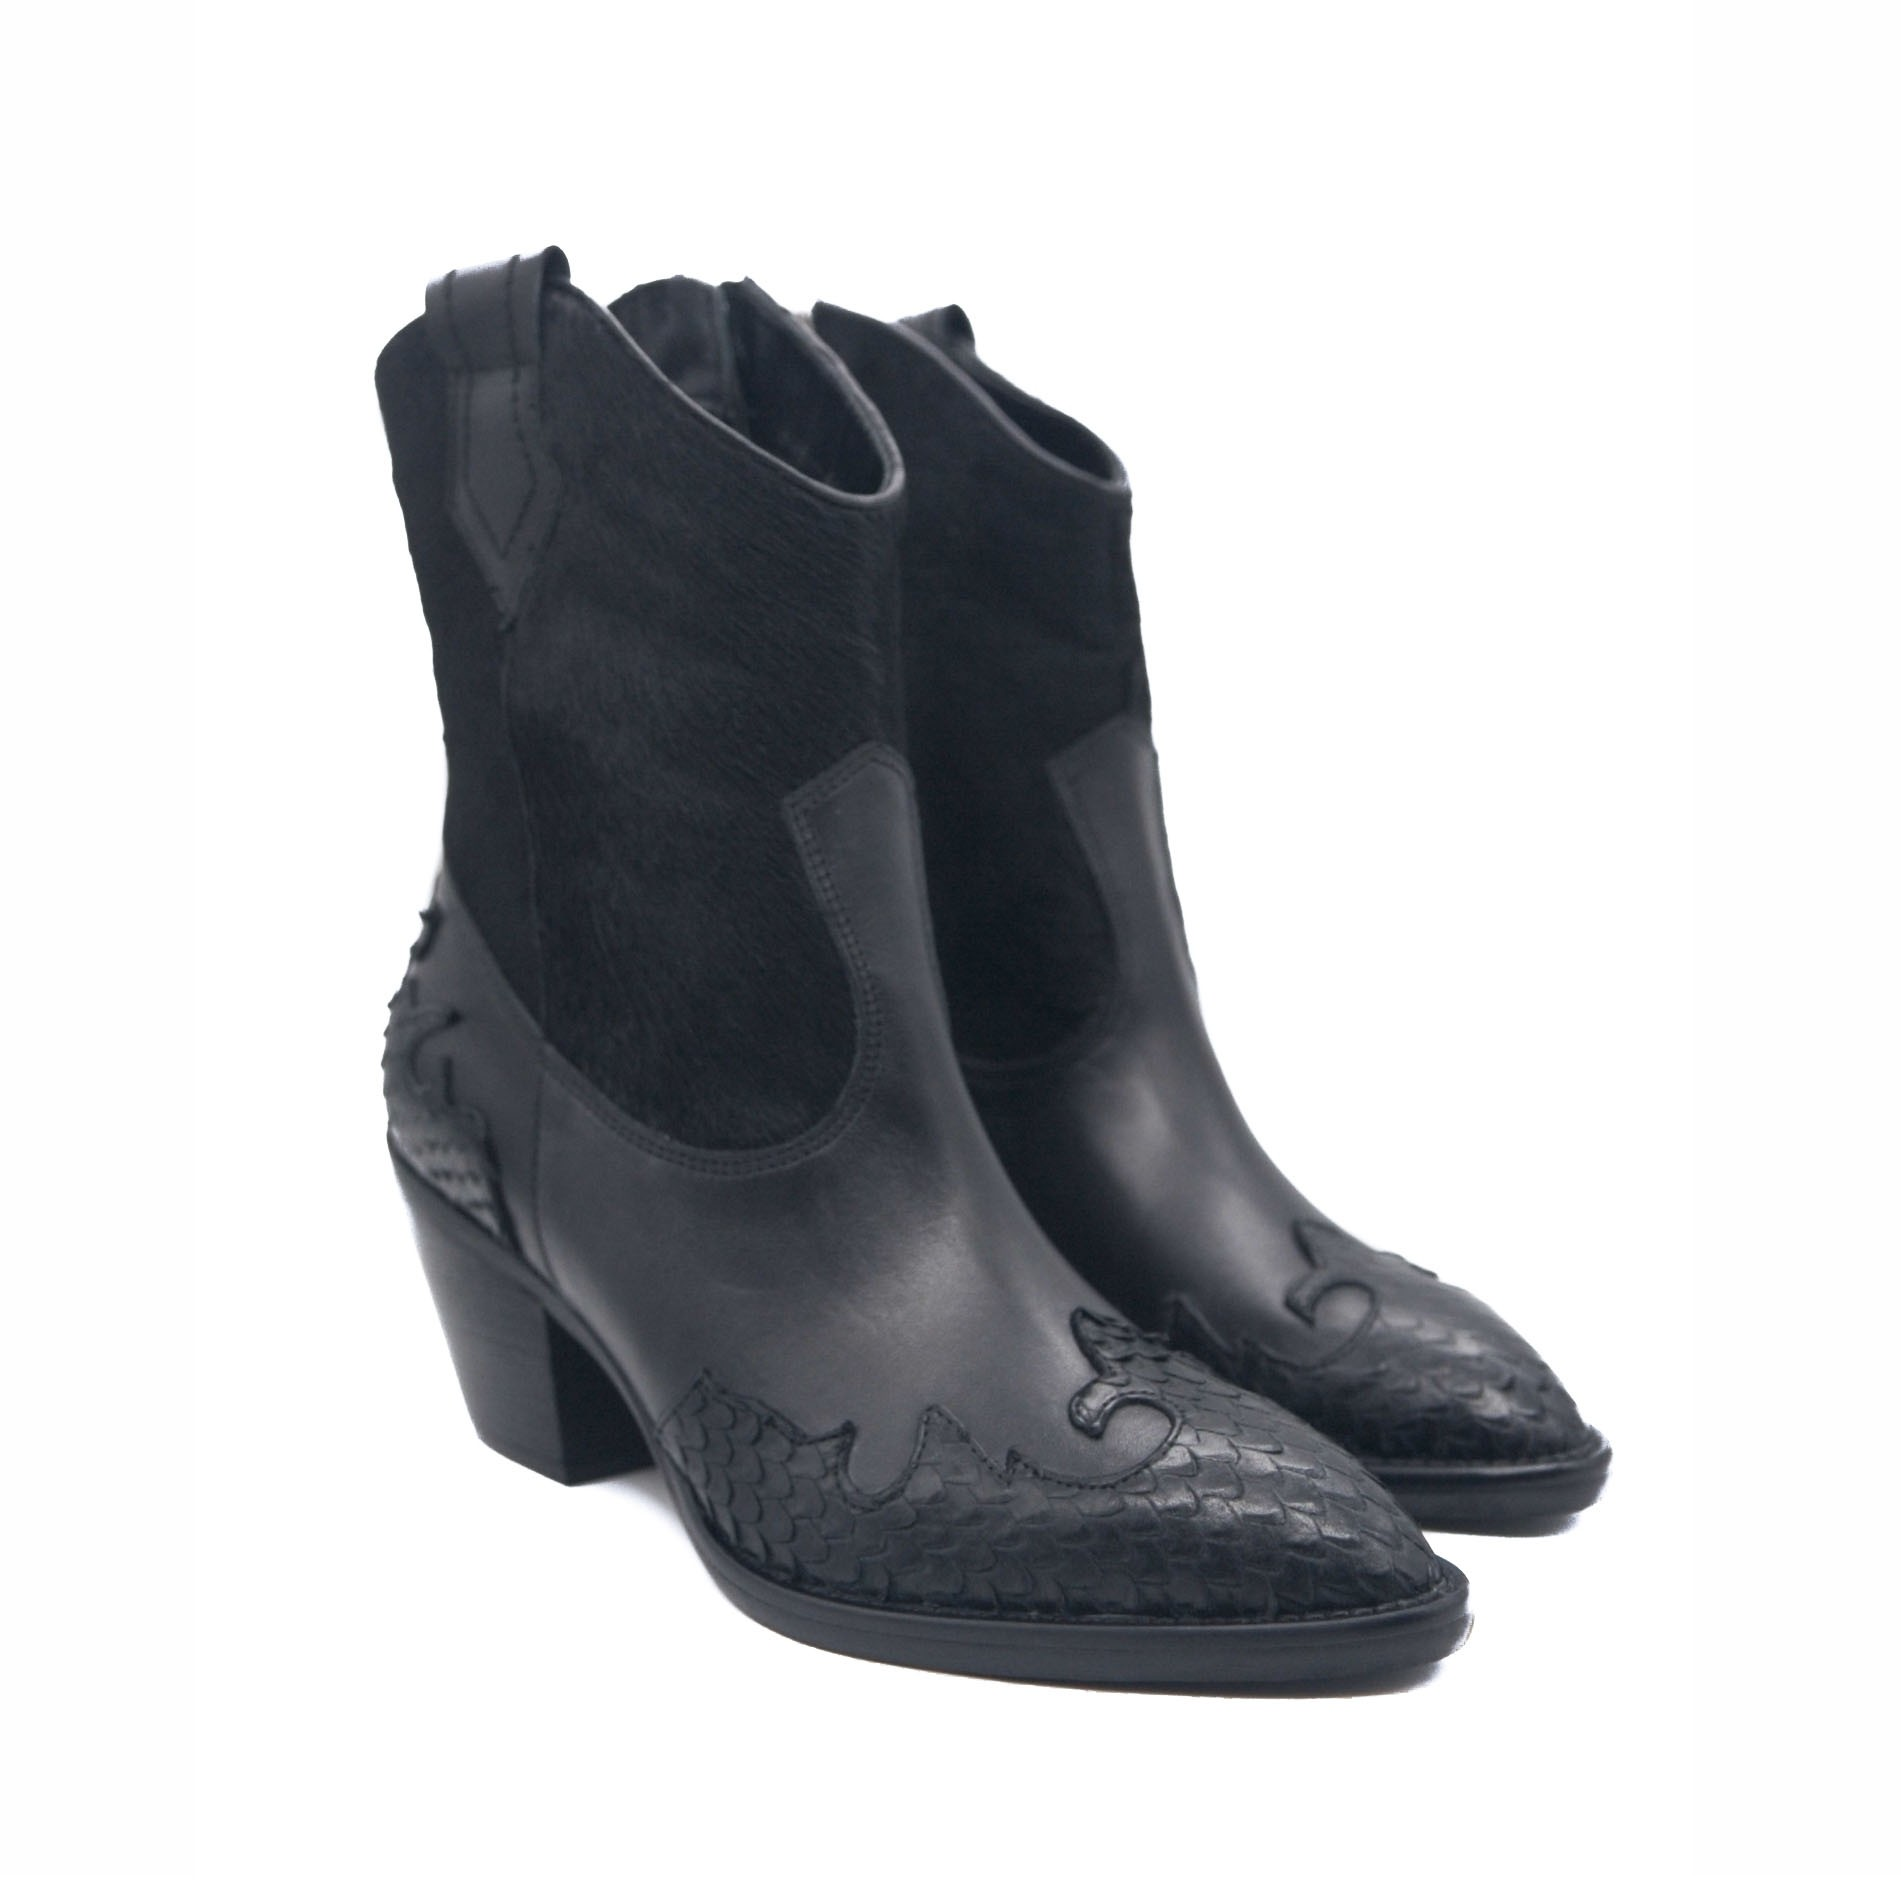 Goody2shoes Western Black Leather and Calf Hair Cowgirl Ladies Ankle Boots